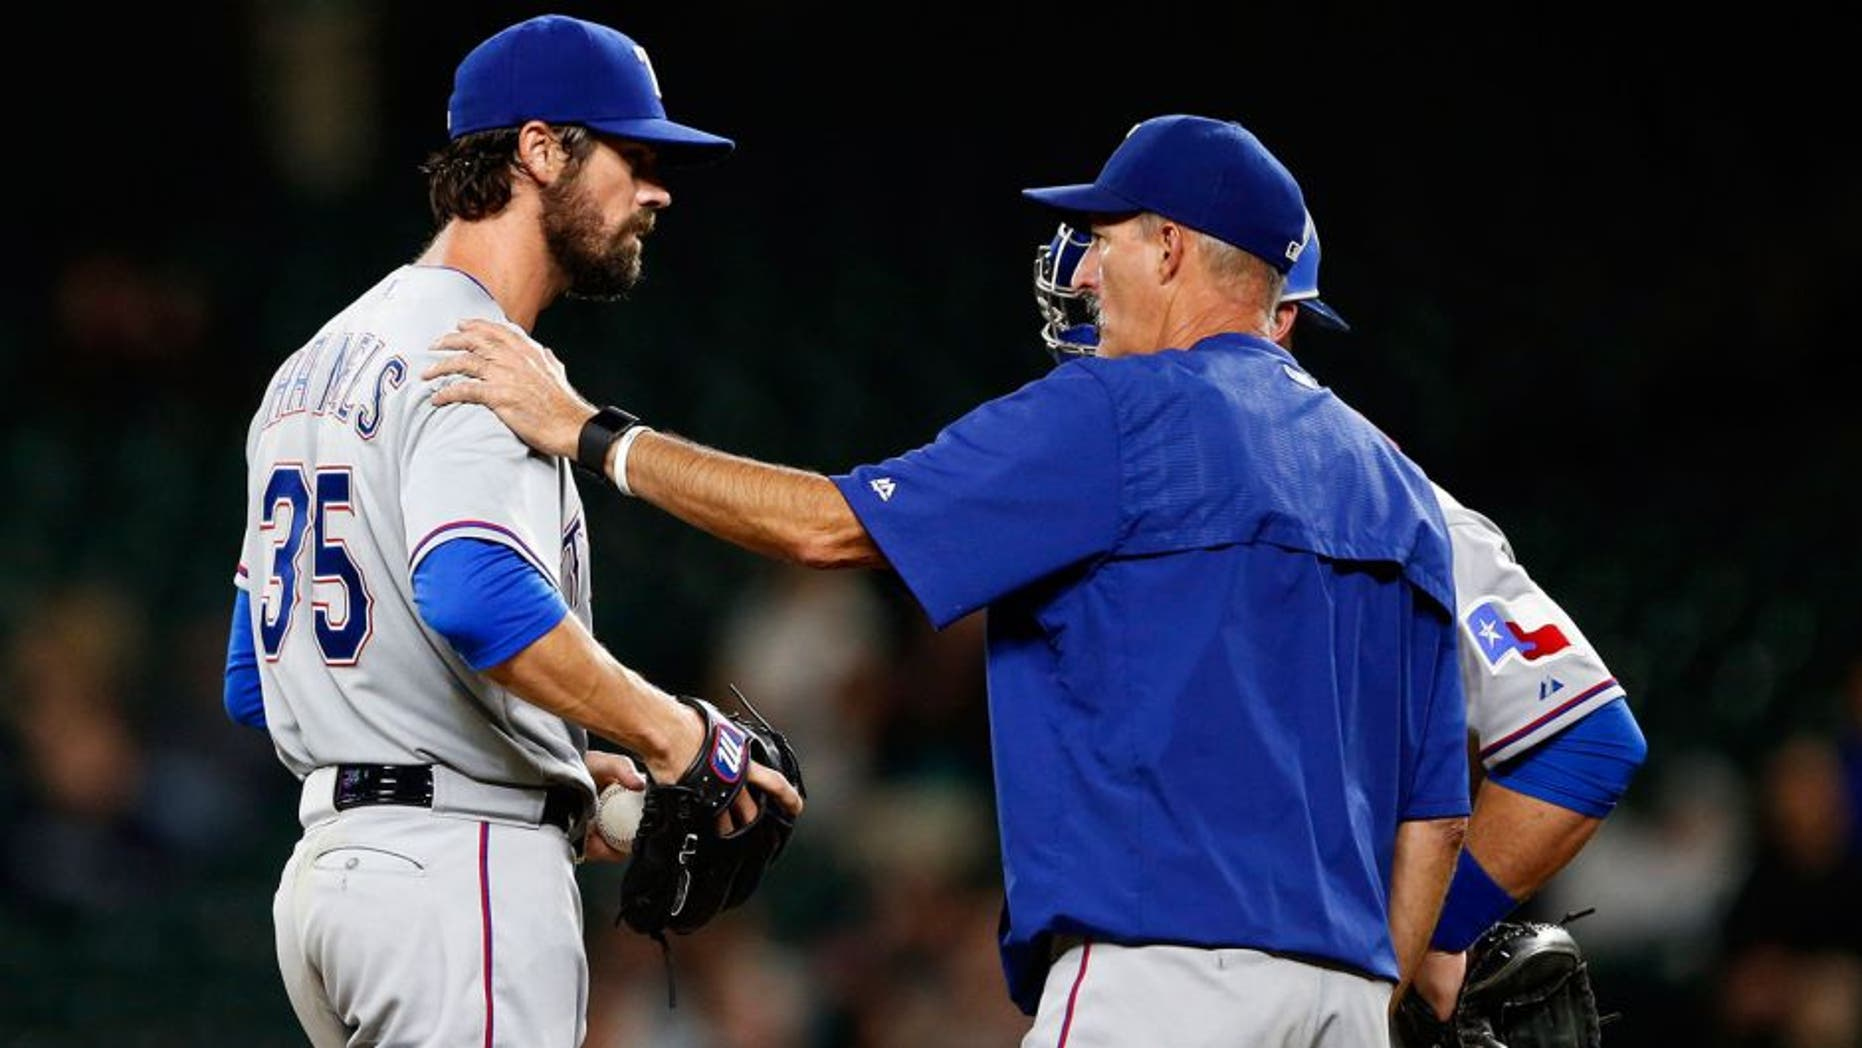 Sep 8, 2015; Seattle, WA, USA; Texas Rangers pitching coach Mike Maddux (31) talks with pitcher Cole Hamels (35) during the seventh inning against the Seattle Mariners at Safeco Field. Mandatory Credit: Joe Nicholson-USA TODAY Sports